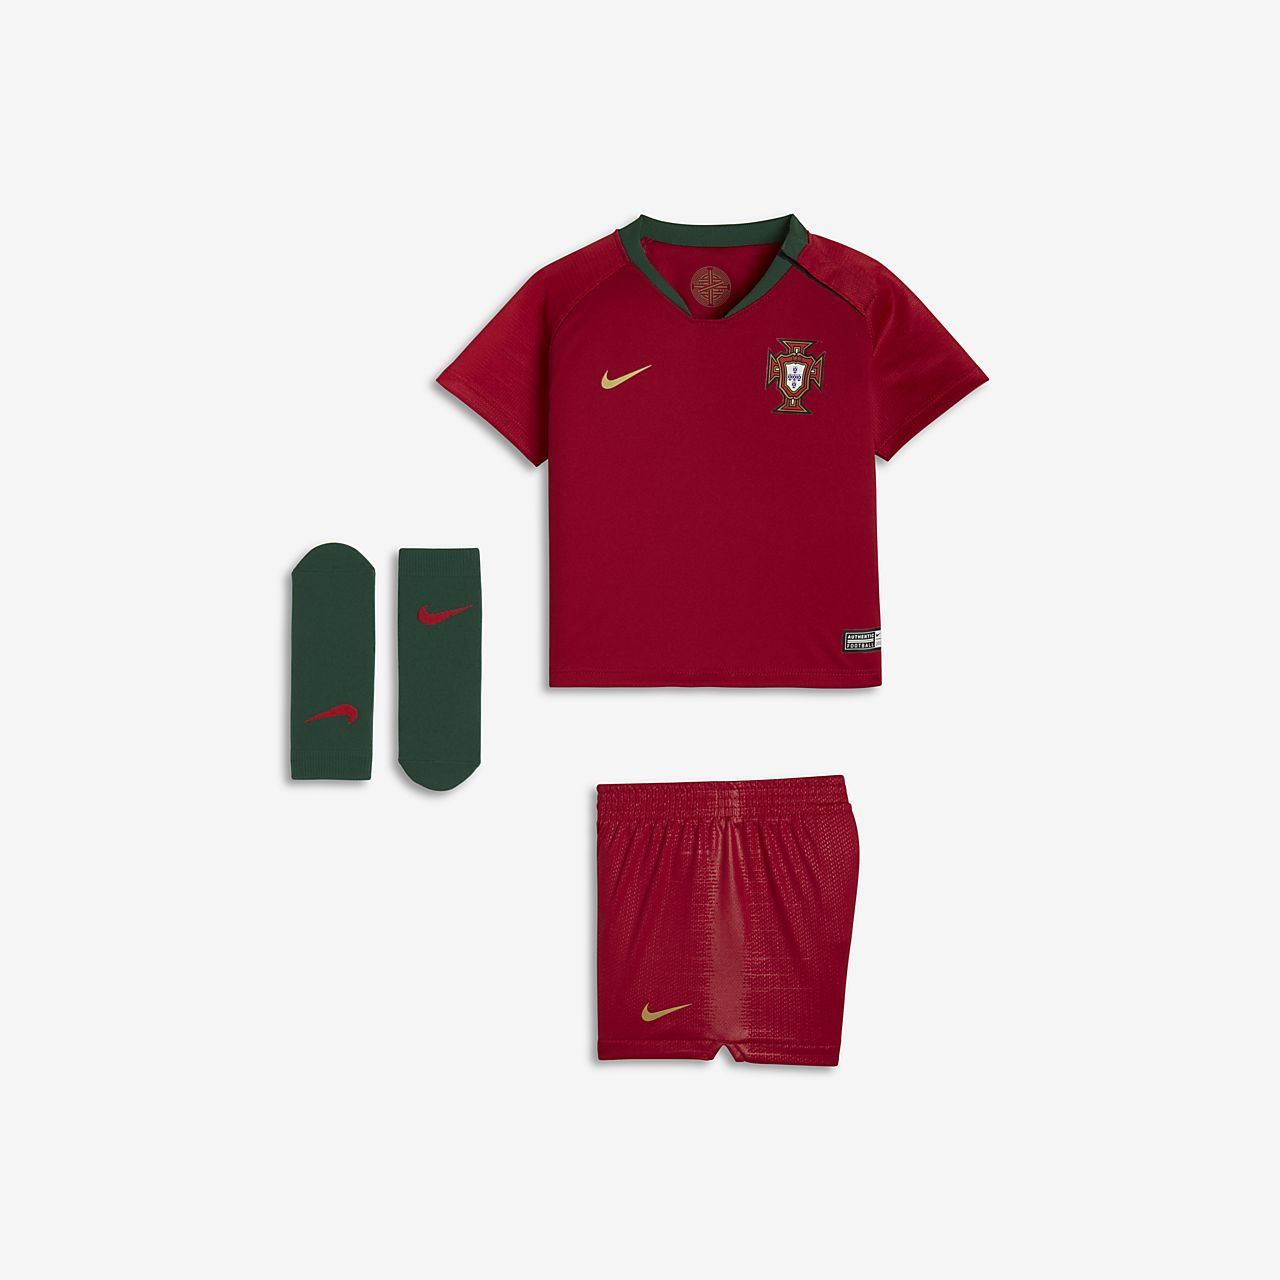 buy popular c4cf1 7a093 2018 Portugal Stadium Home Baby & Toddler Football Kit